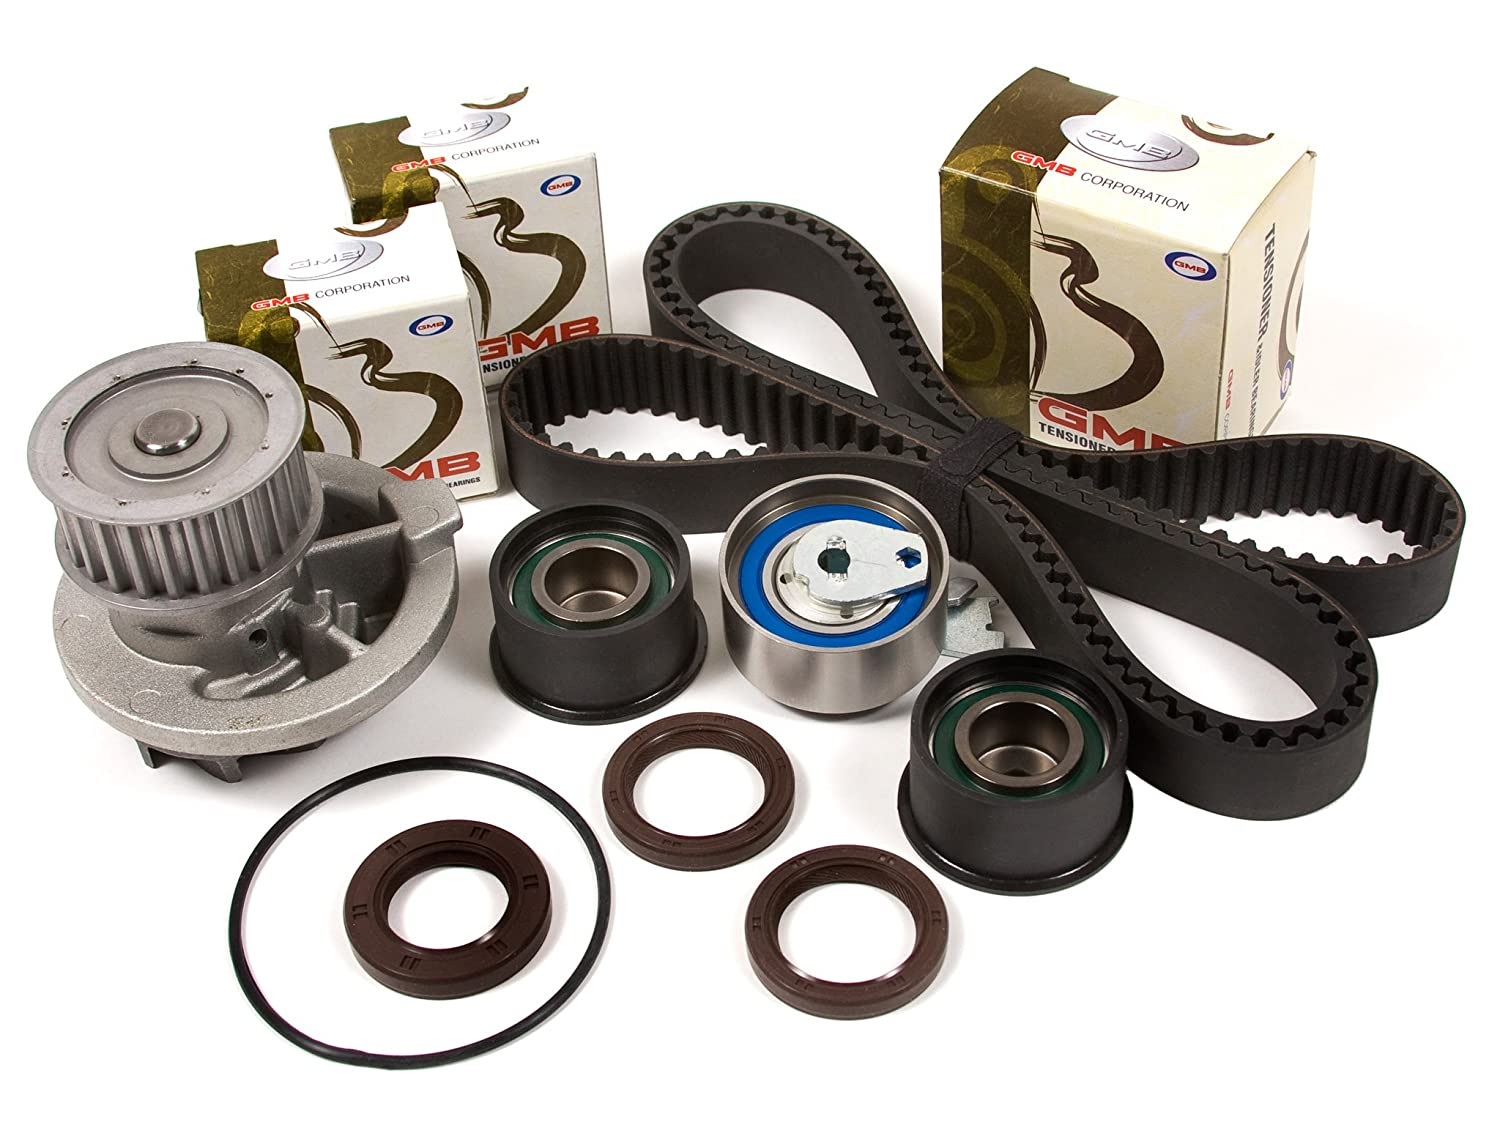 Evergreen Tbk305wpt 99 02 Daewoo Leganza Isuzu Rodeo 1999 Water Pump Amigo 22l X22se Timing Belt Kit Automotive